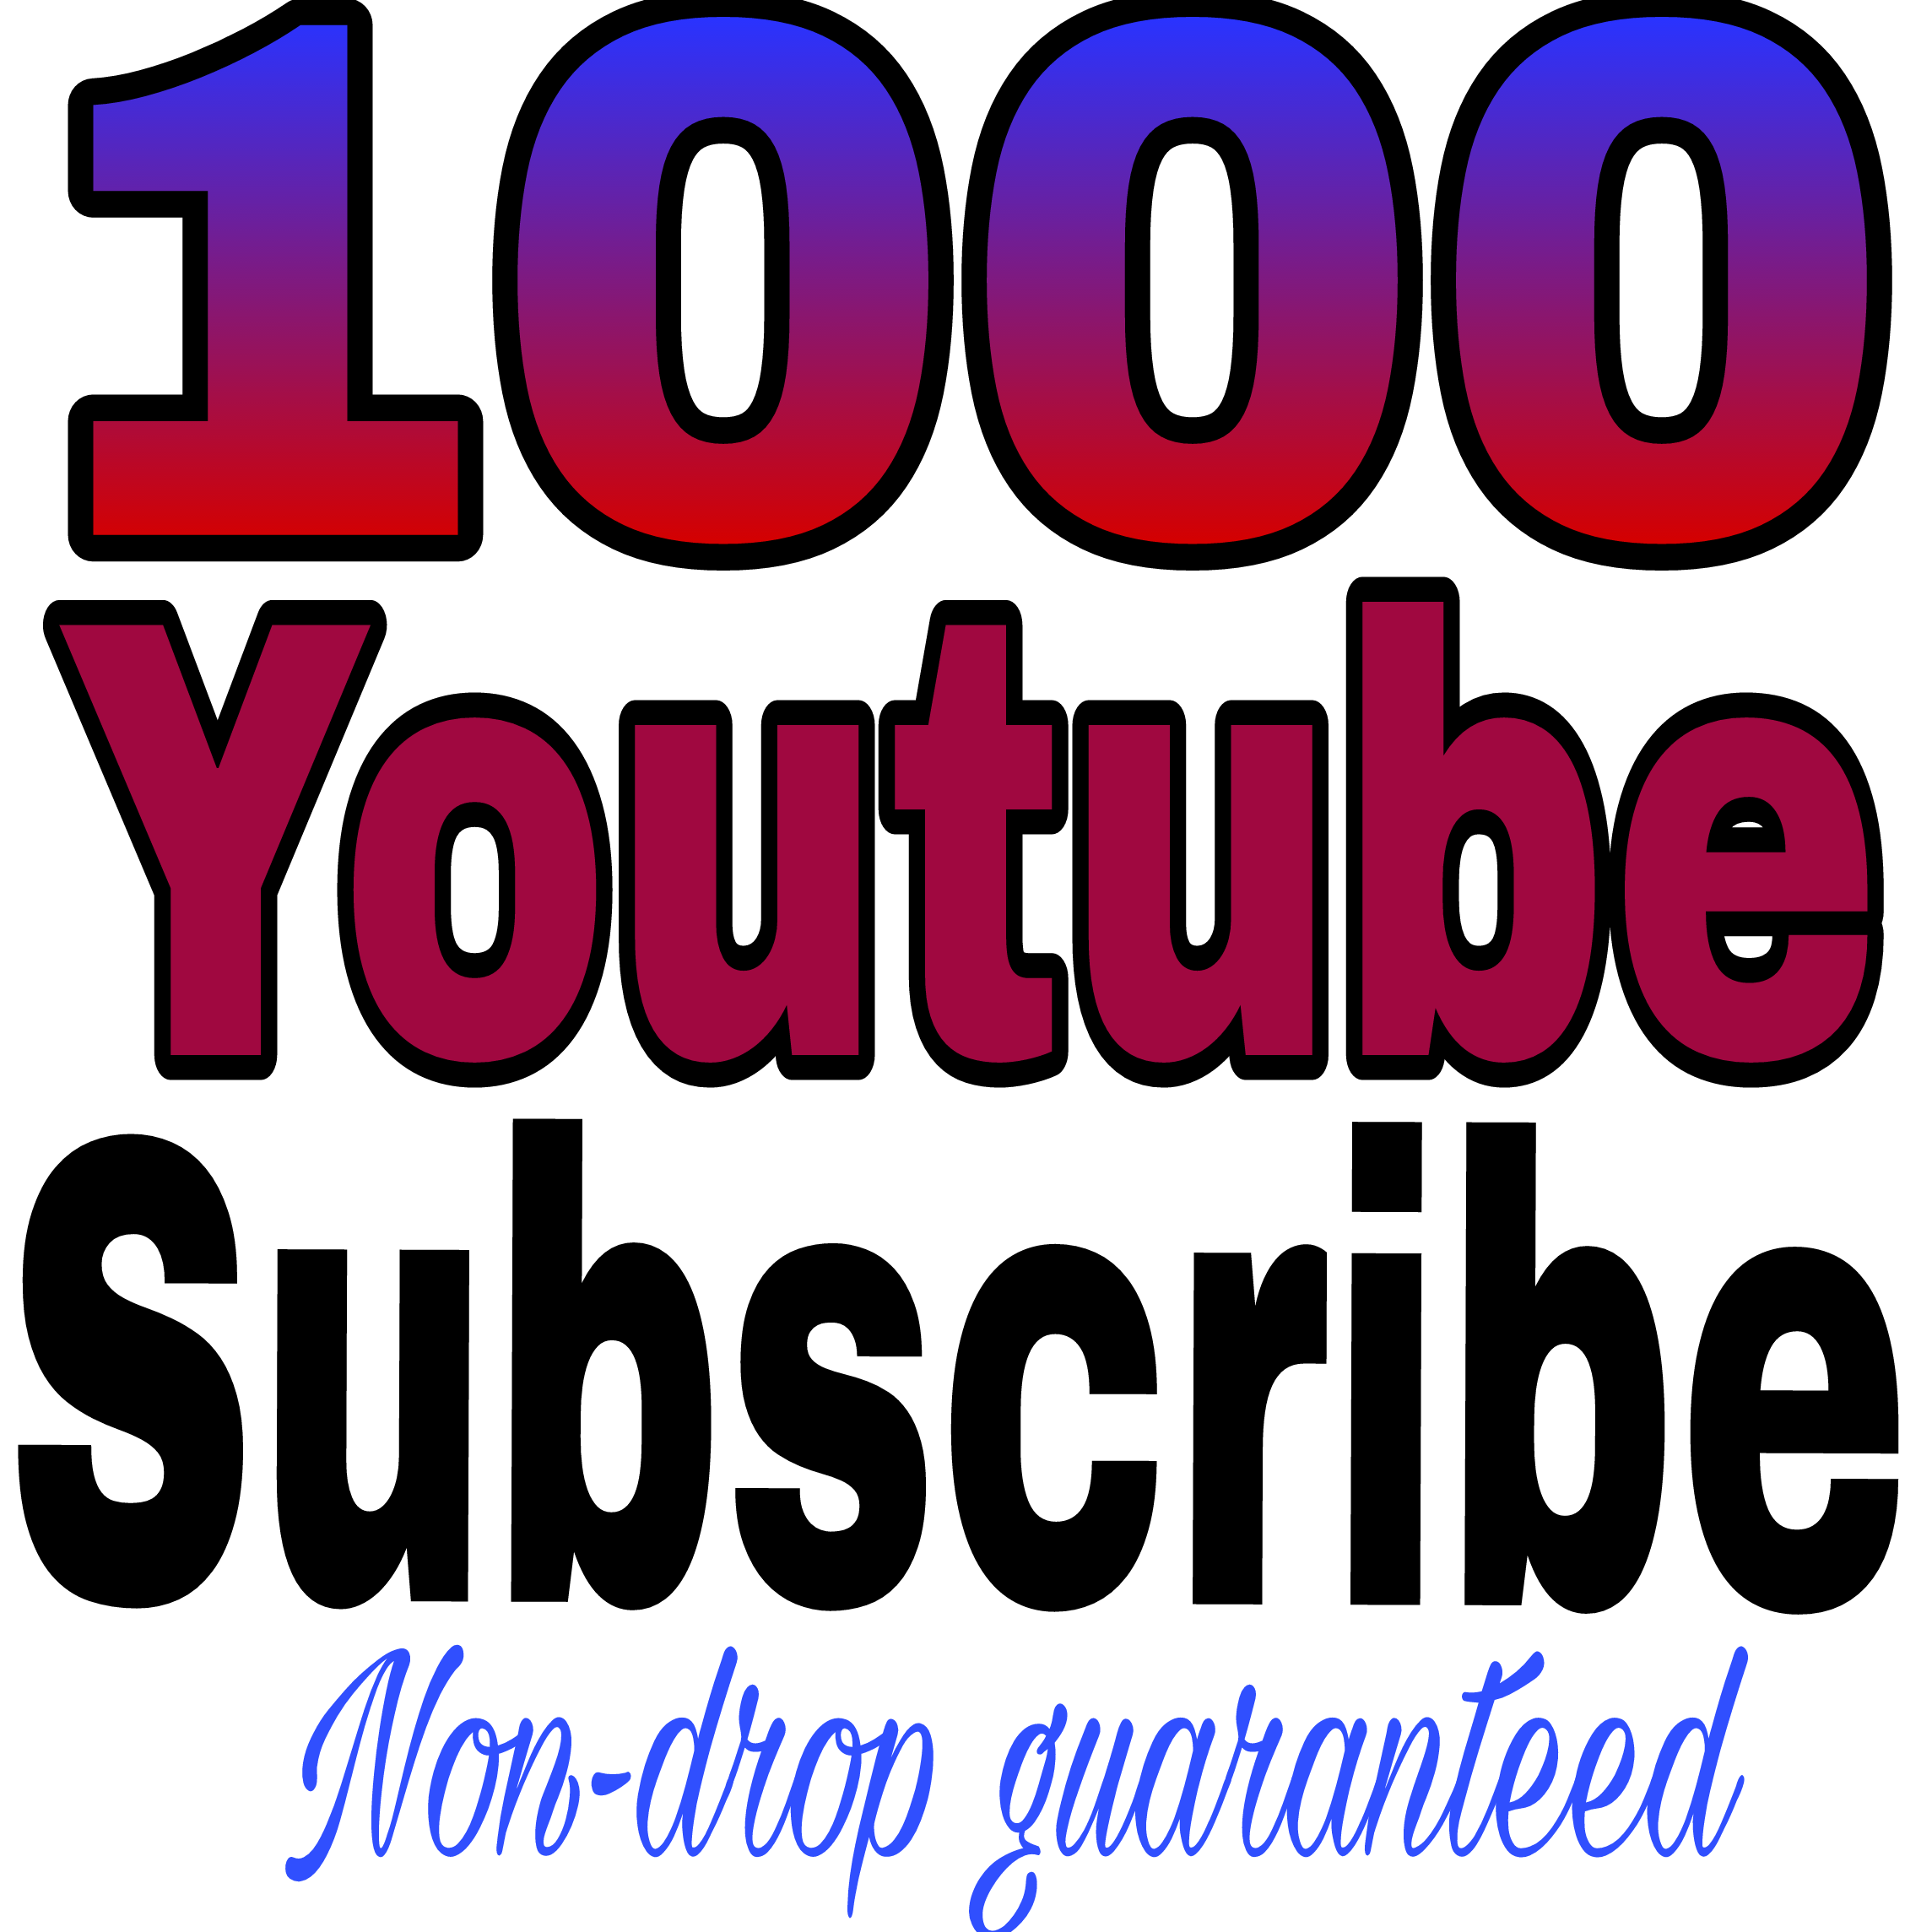 Instant start 1050+ YT channel subs non drop refill guaranteed in 24-96 hours delivery